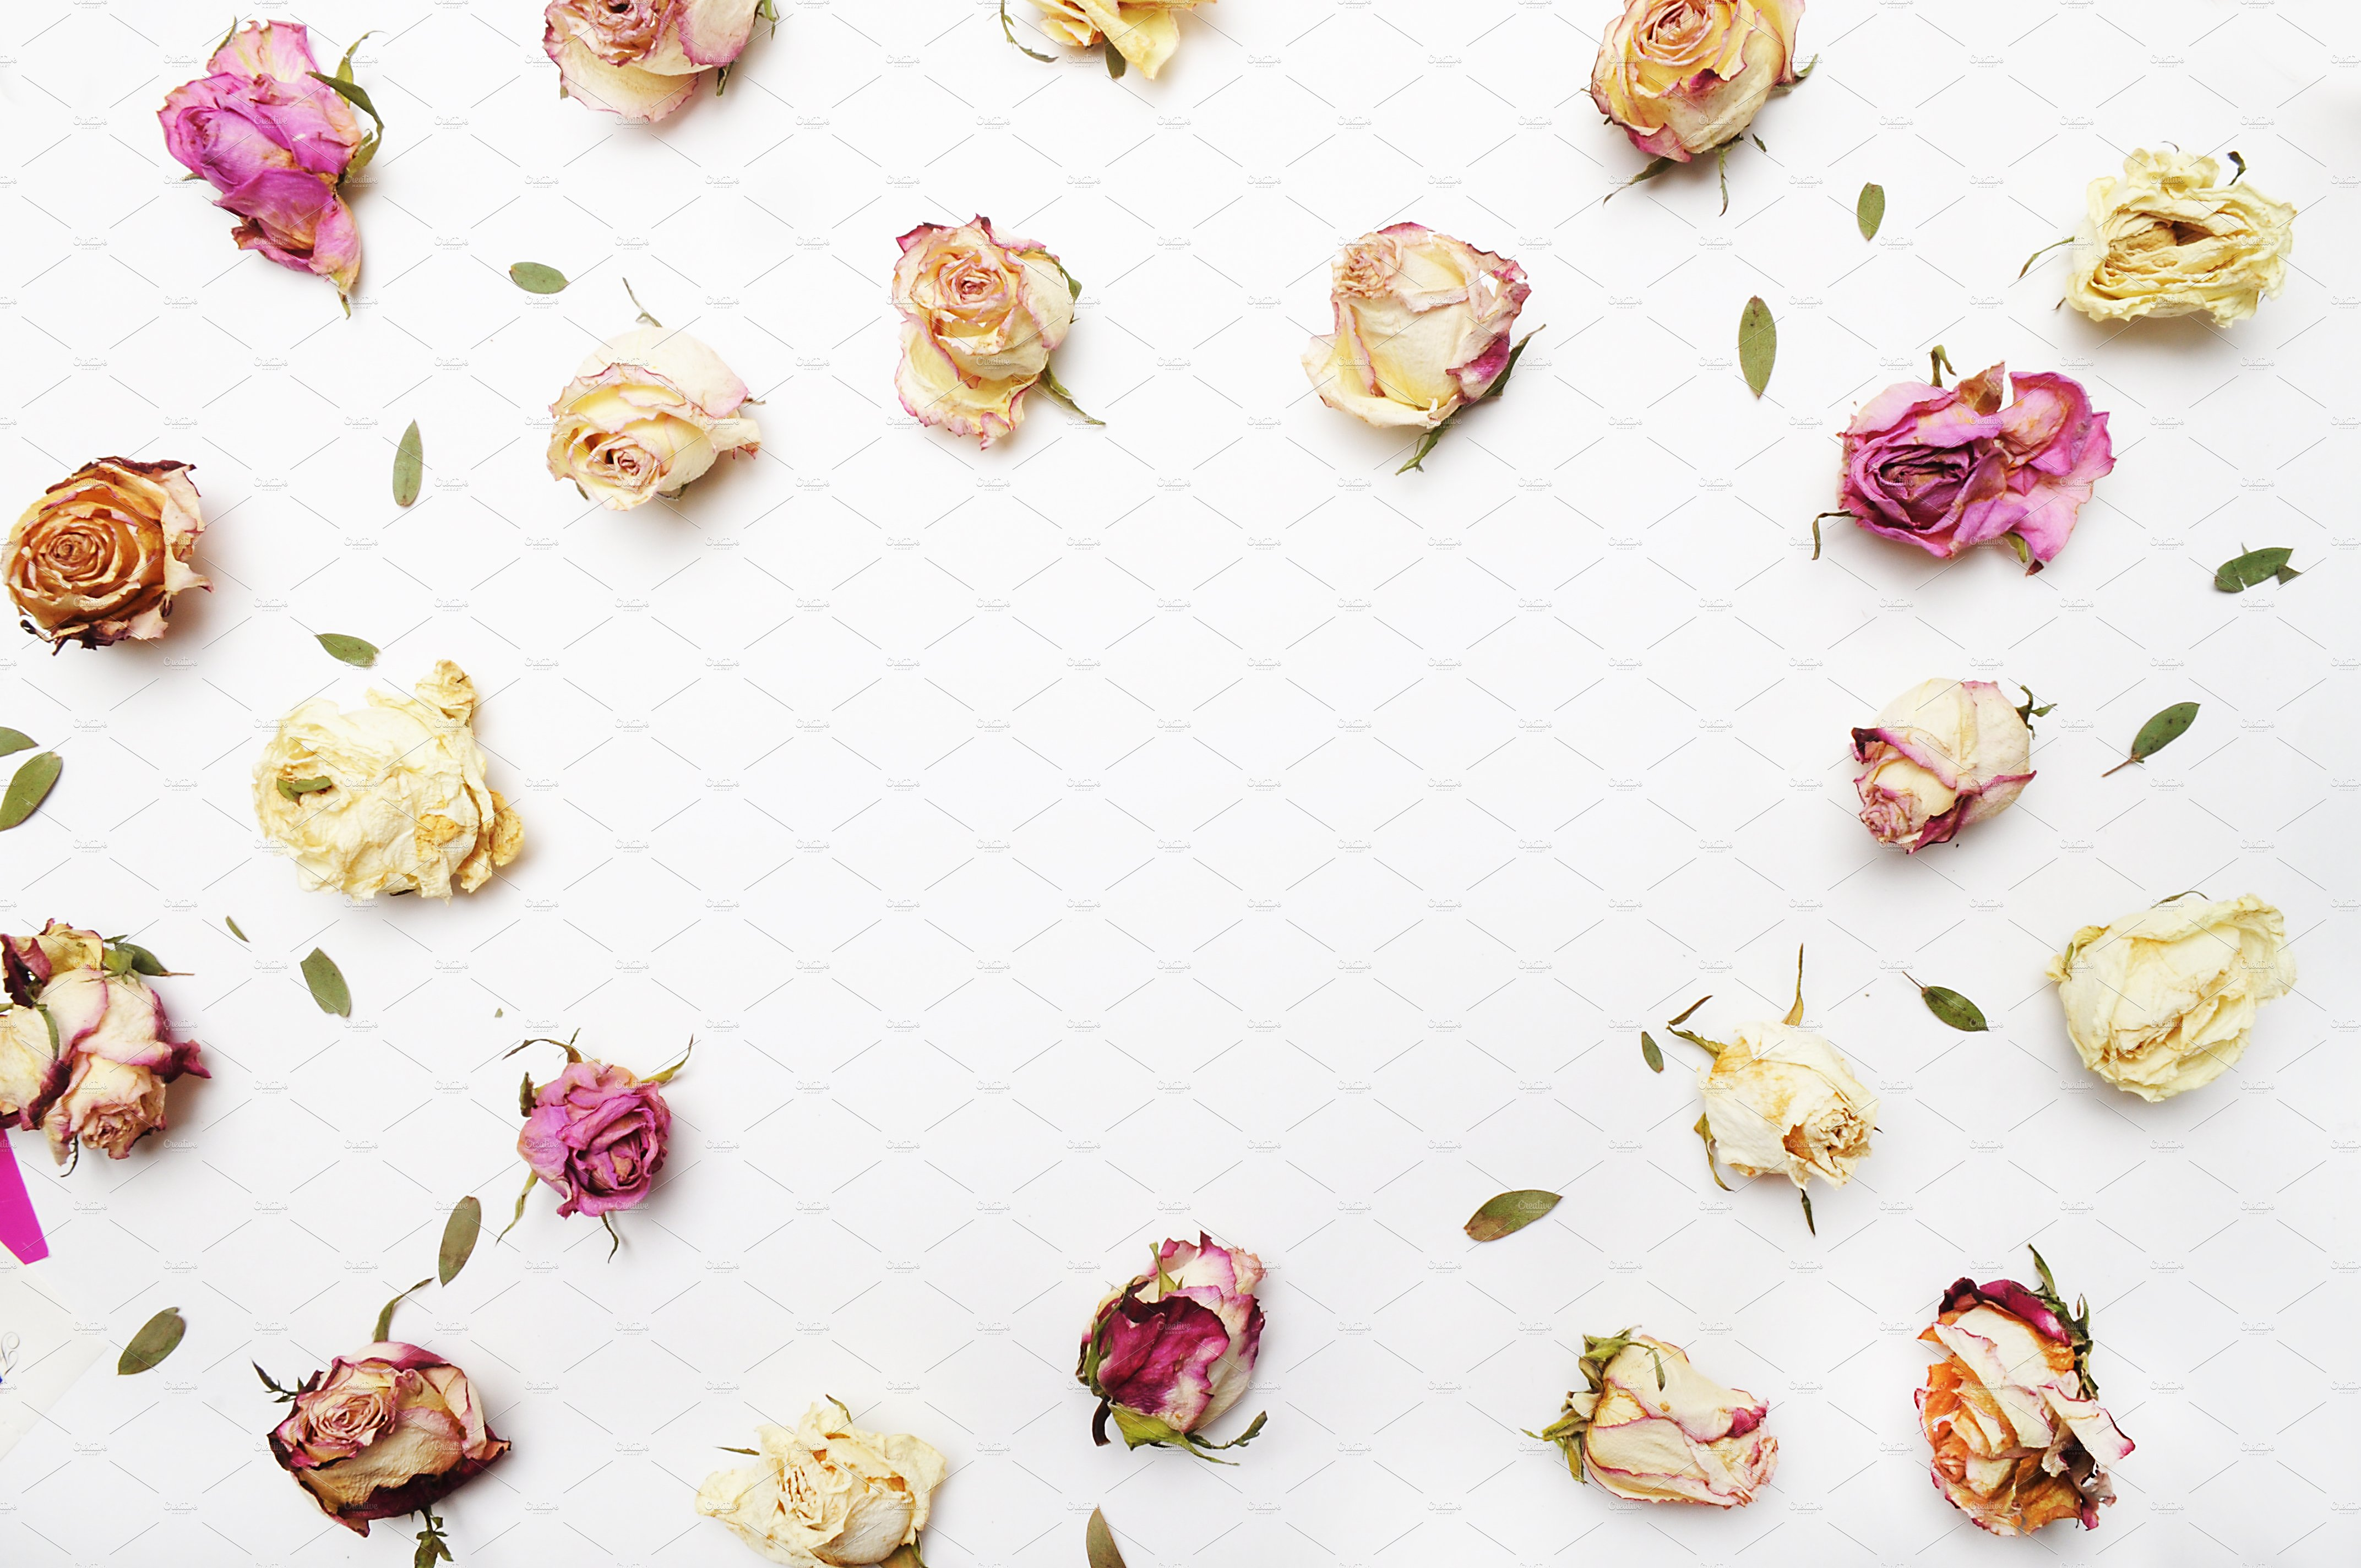 Floral Mockup Pack example image 6